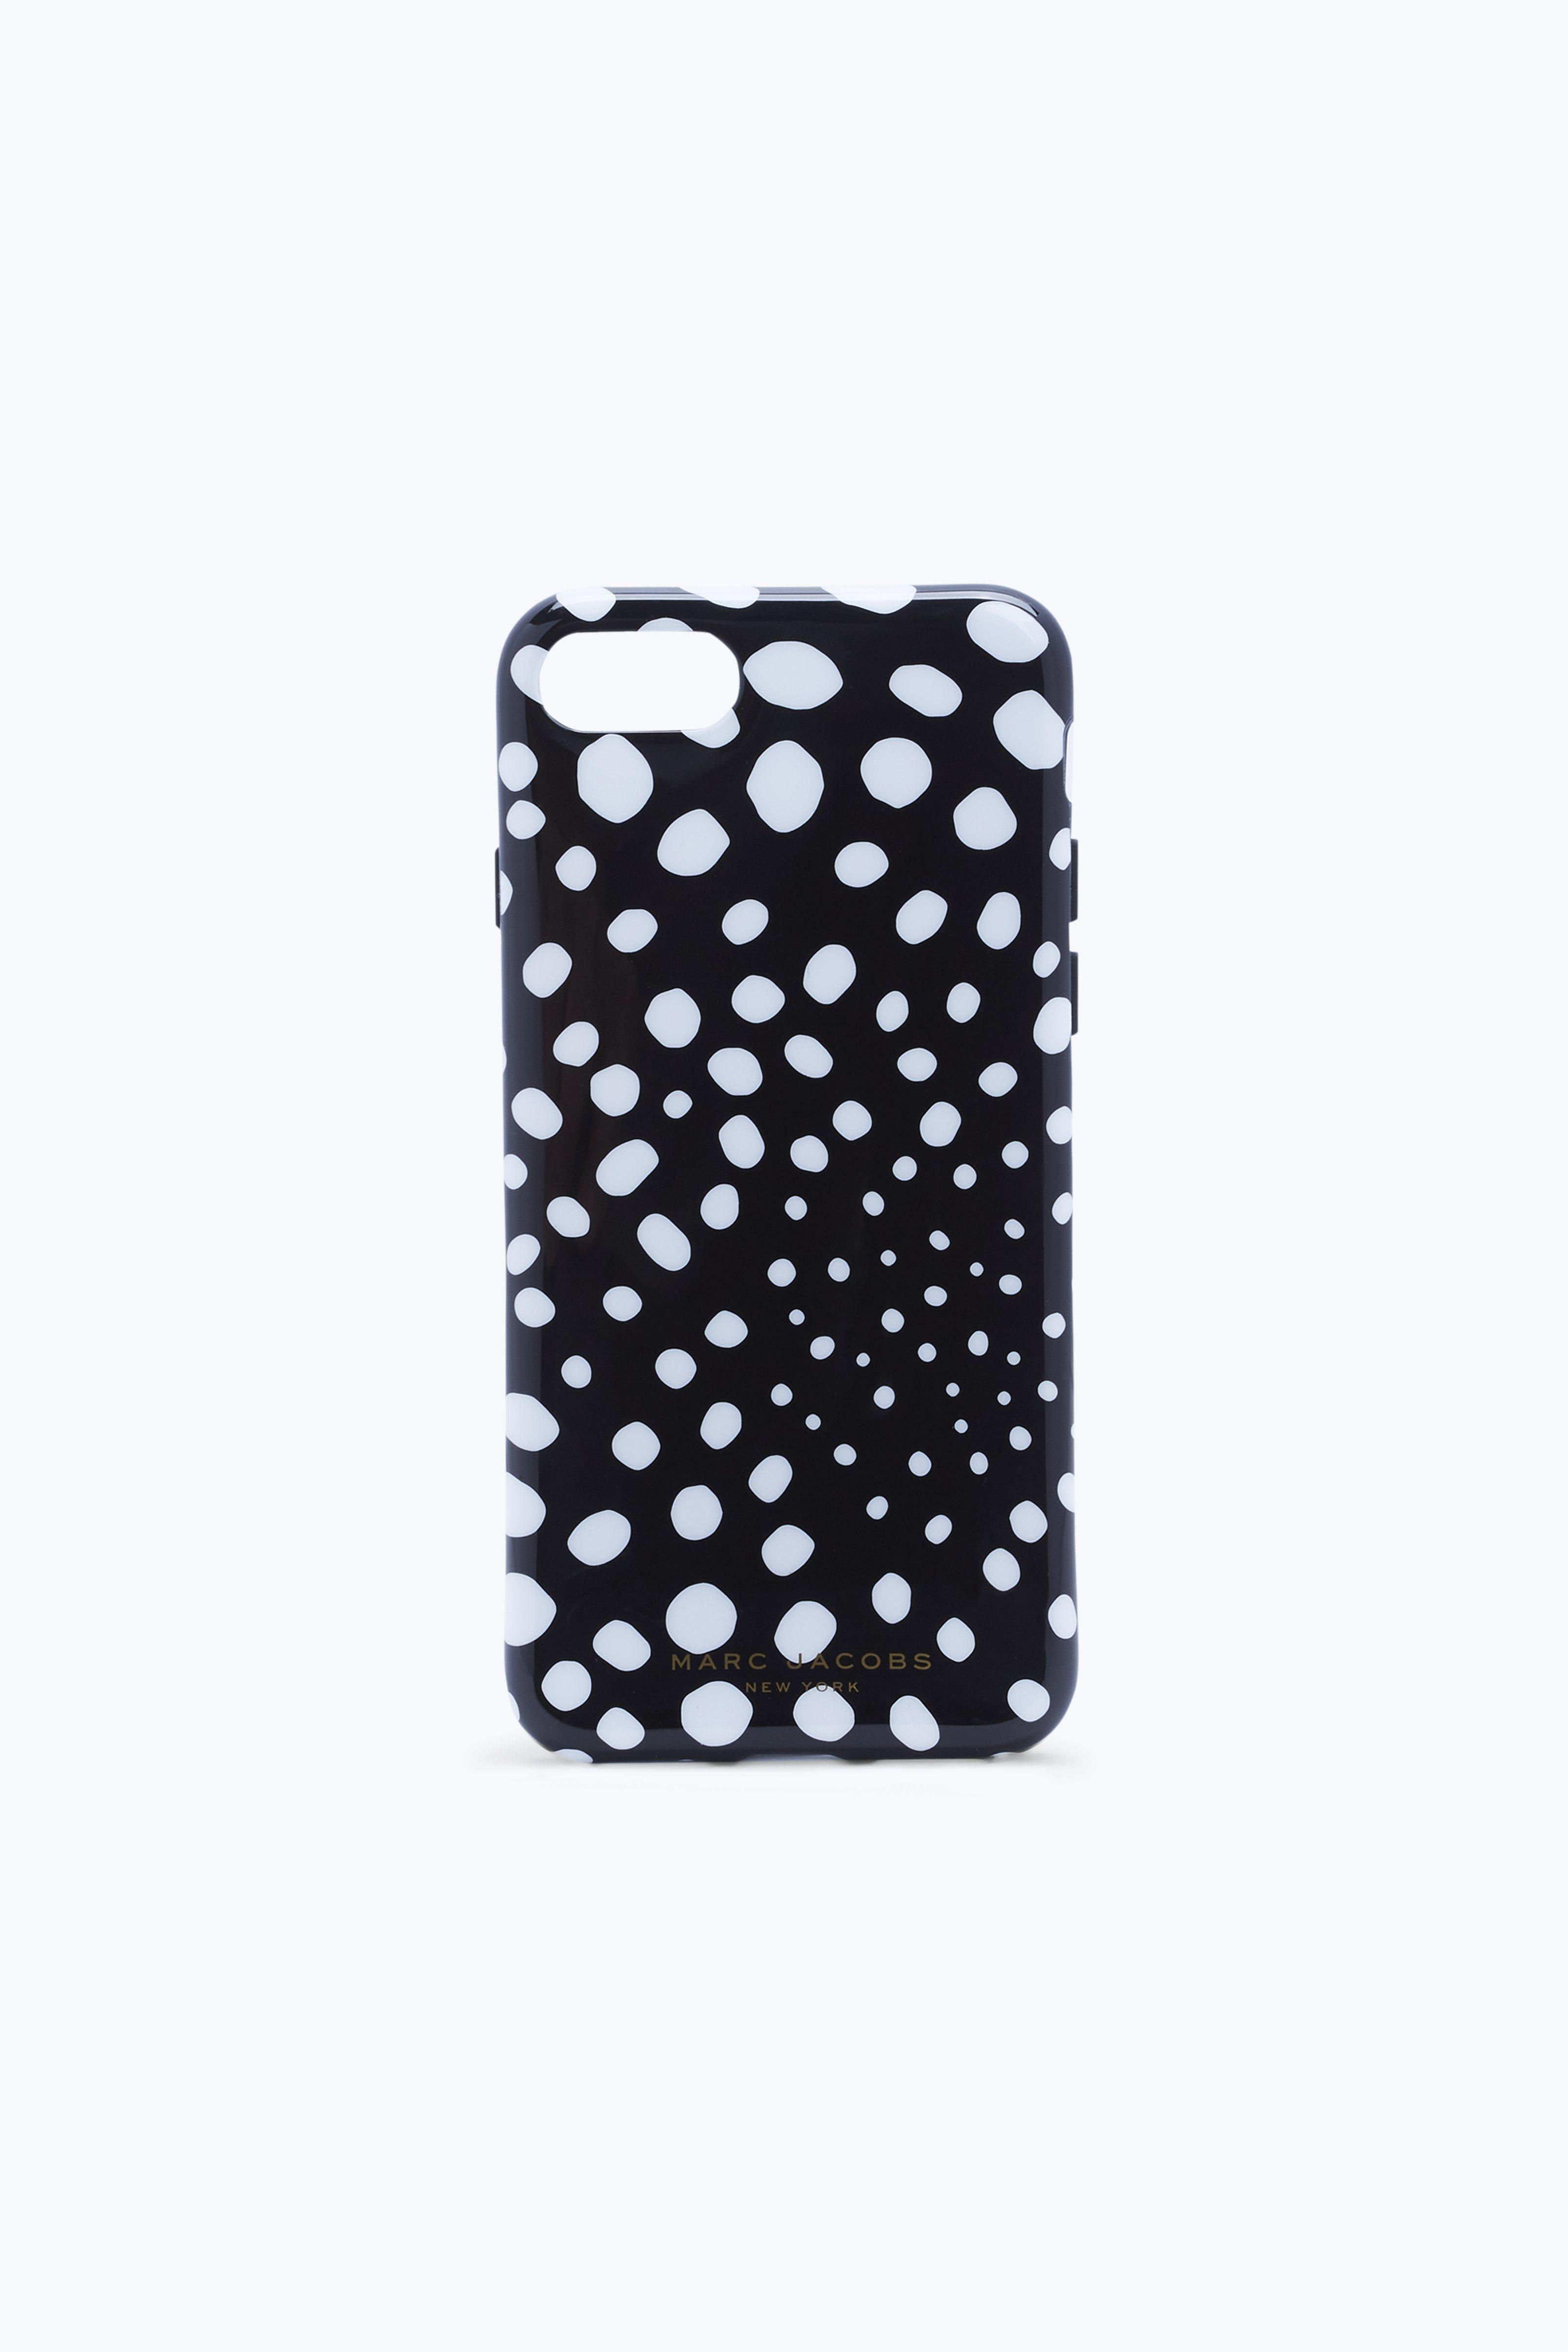 MARC JACOBS Wave Spot Iphone 6 / 6S / 7 Case in Black Multi   ModeSens